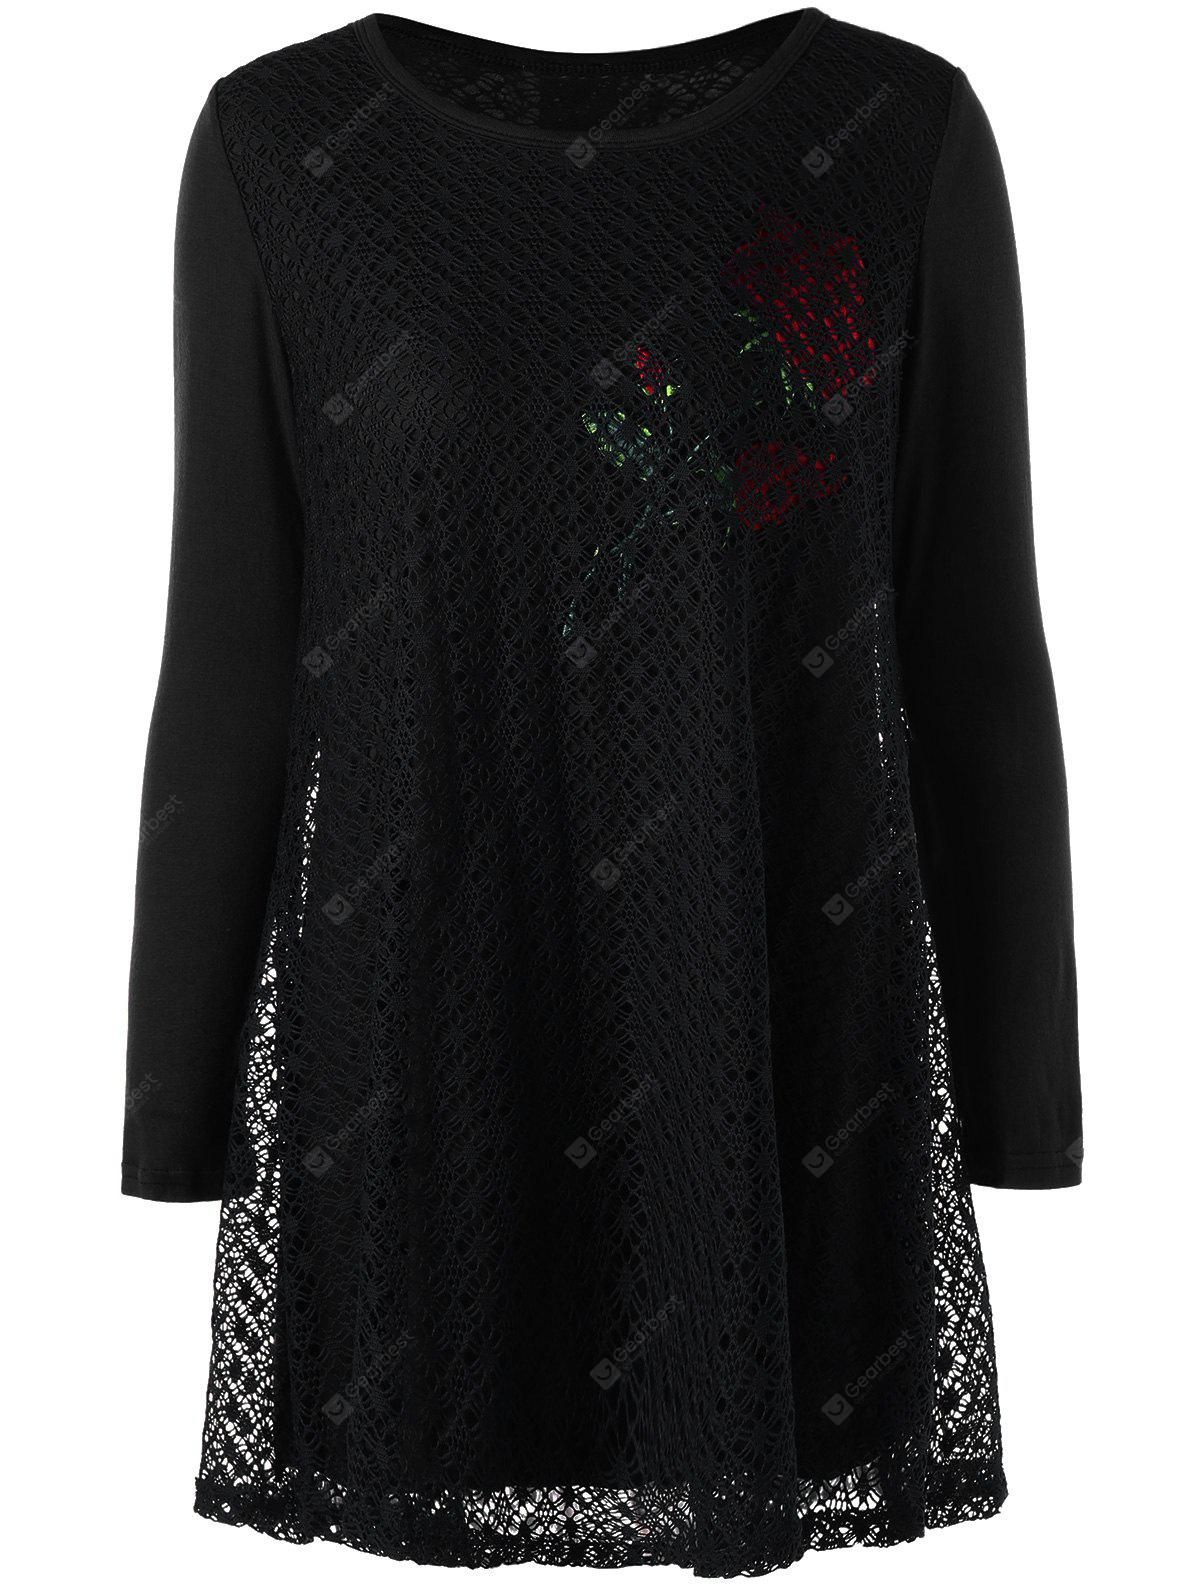 Plus Size Openwork Rose Pattern Tunic Blouse